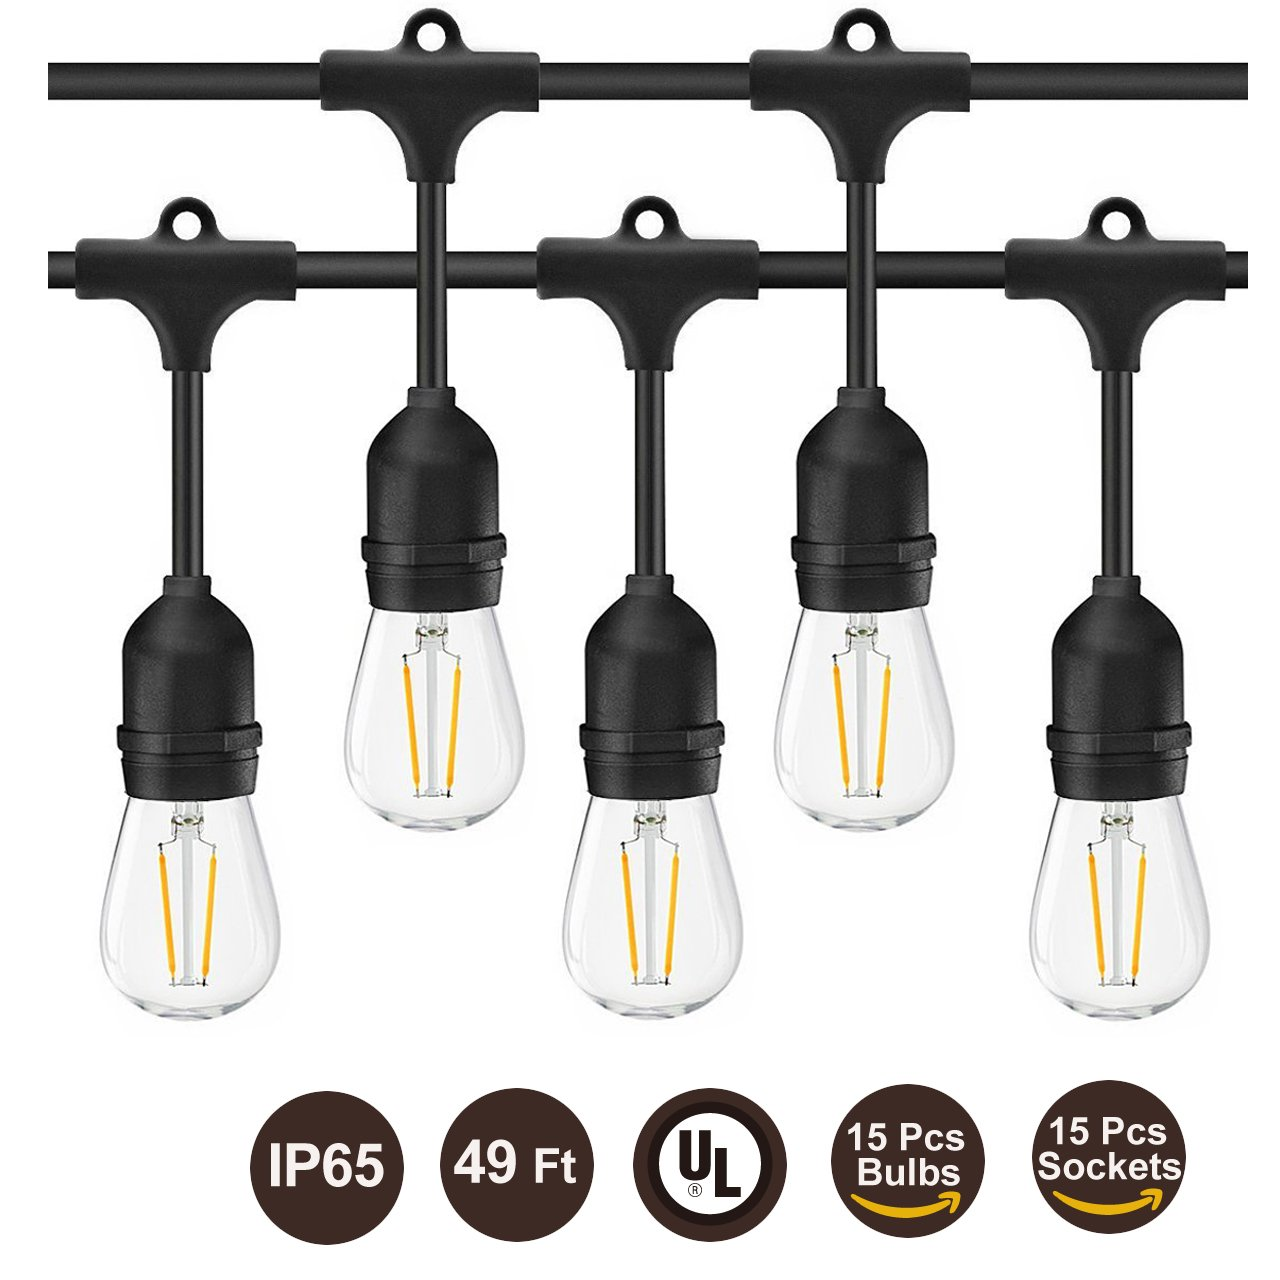 BRTLX Commercial Grade Outdoor Weatherproof S14 LED String Lights 49Ft with 15 Dropped Sockets 2W 15Pcs S14 LED Edison Filament Bulb Included for Patio Courtyard Porch Wedding